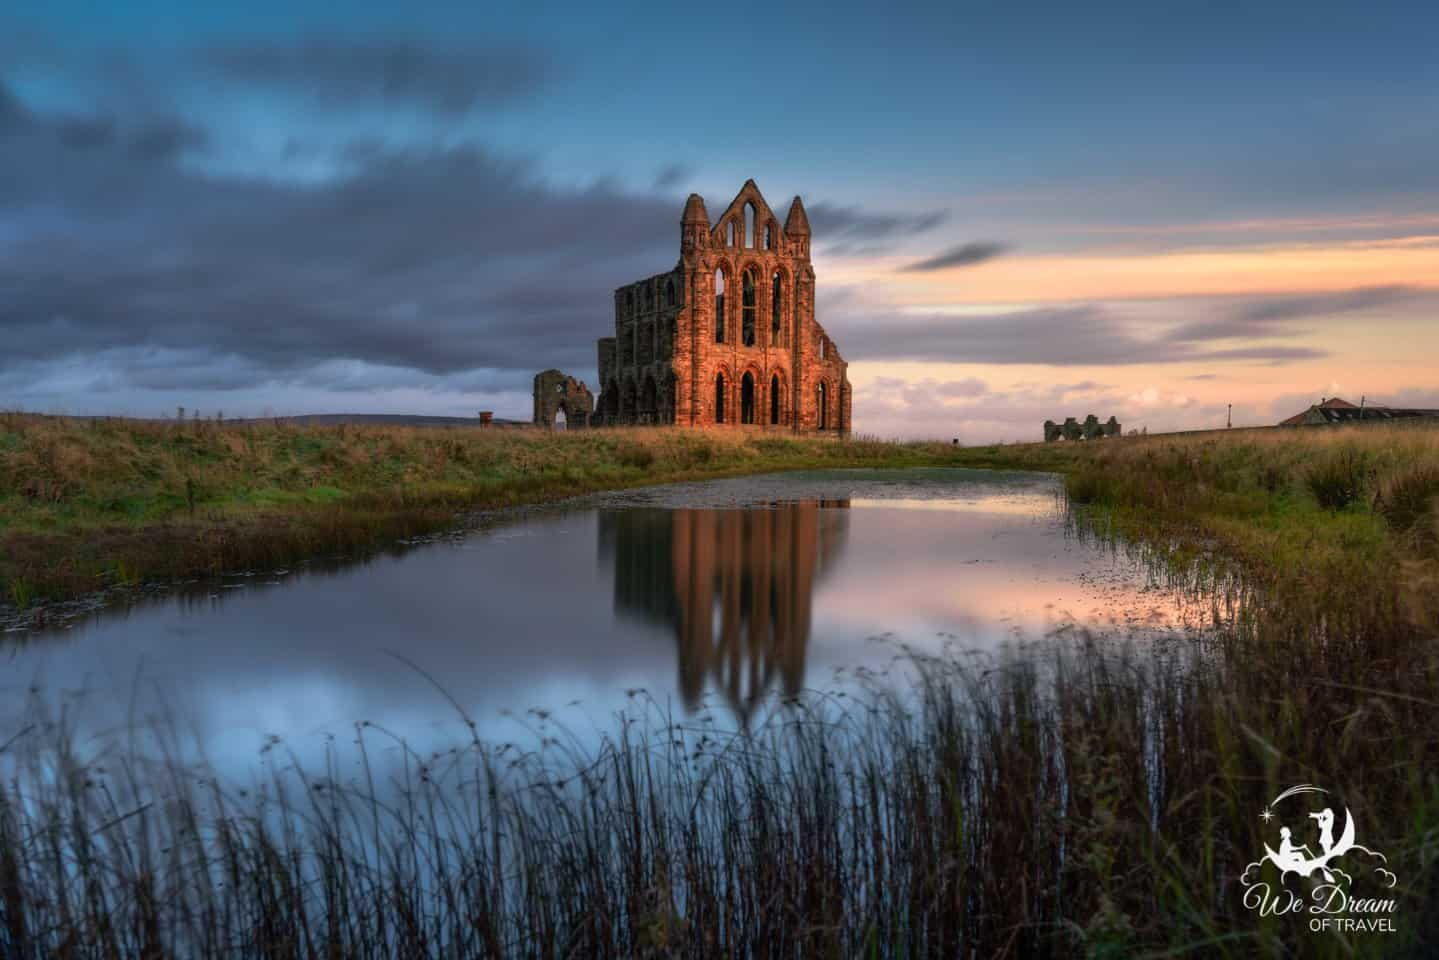 Long exposure photography of Whitby Abbey reflection in the lake at sunrise - one of the most famous things to do in Whitby.